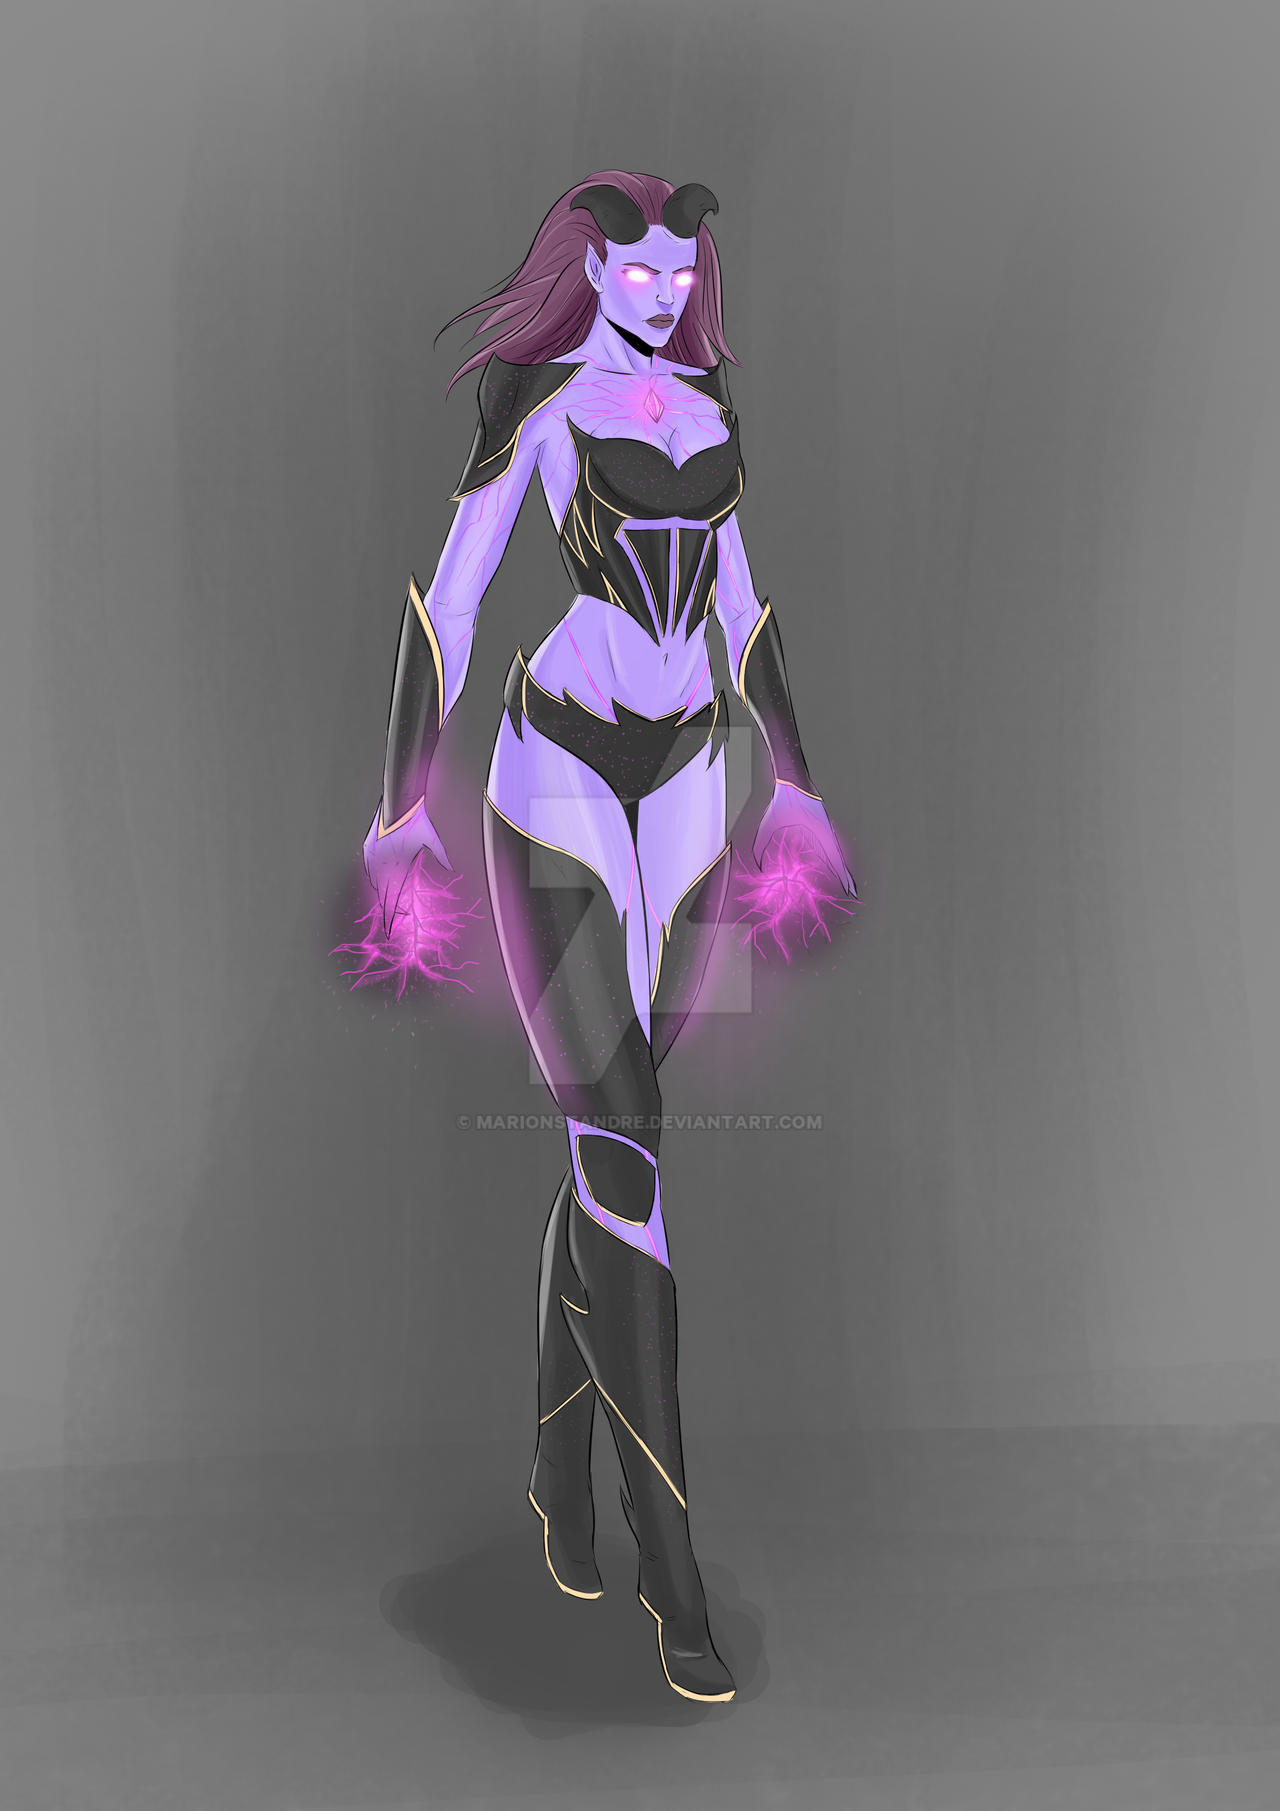 Character Design Commission Price : Eclypse character design commission by marionstandre on